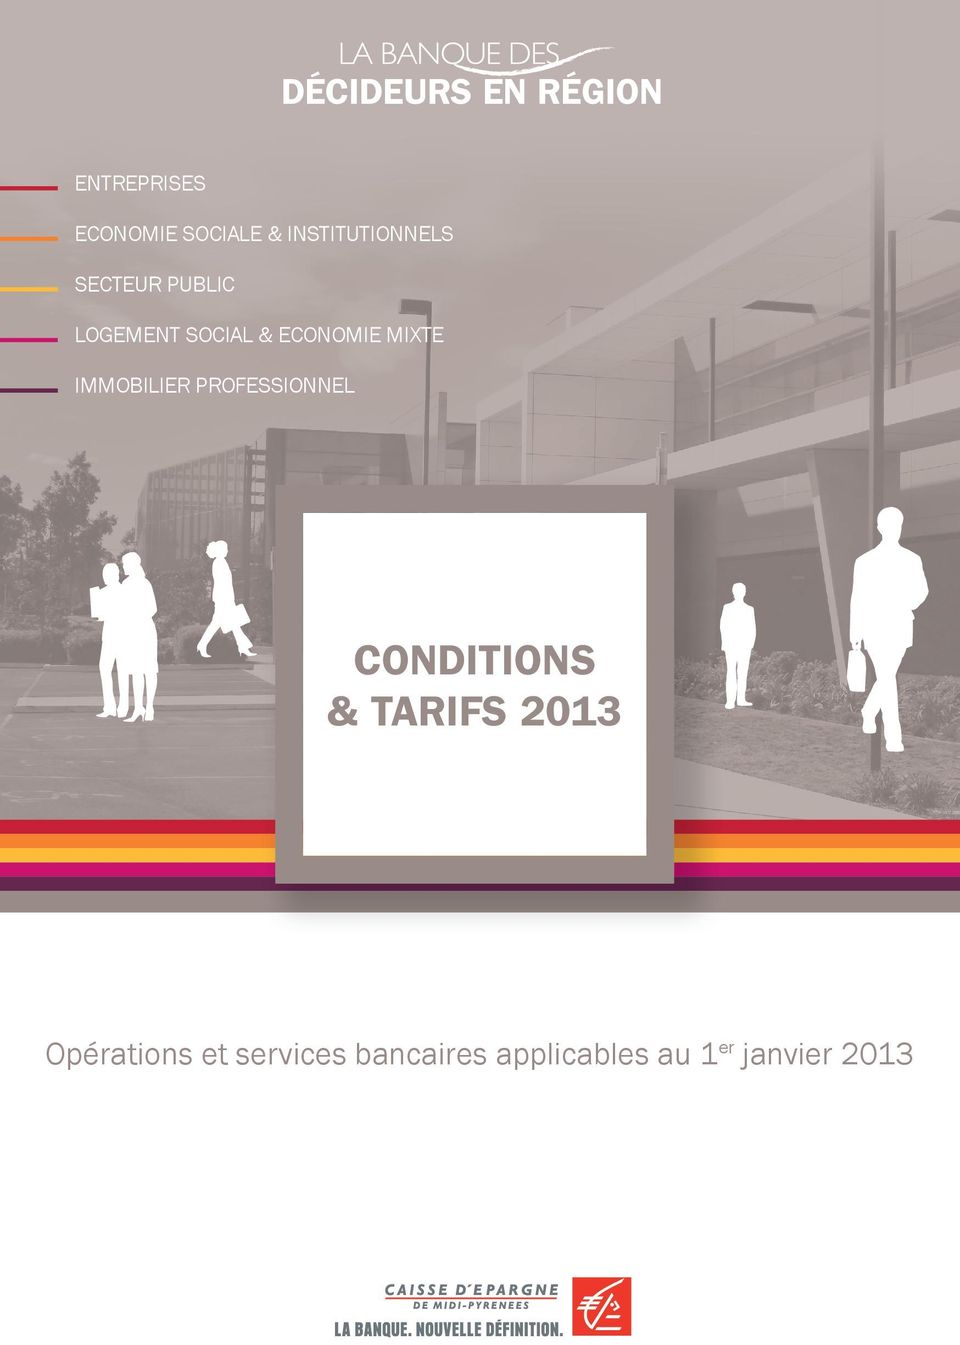 mixte immobilier professionnel Conditions & tarifs 2013